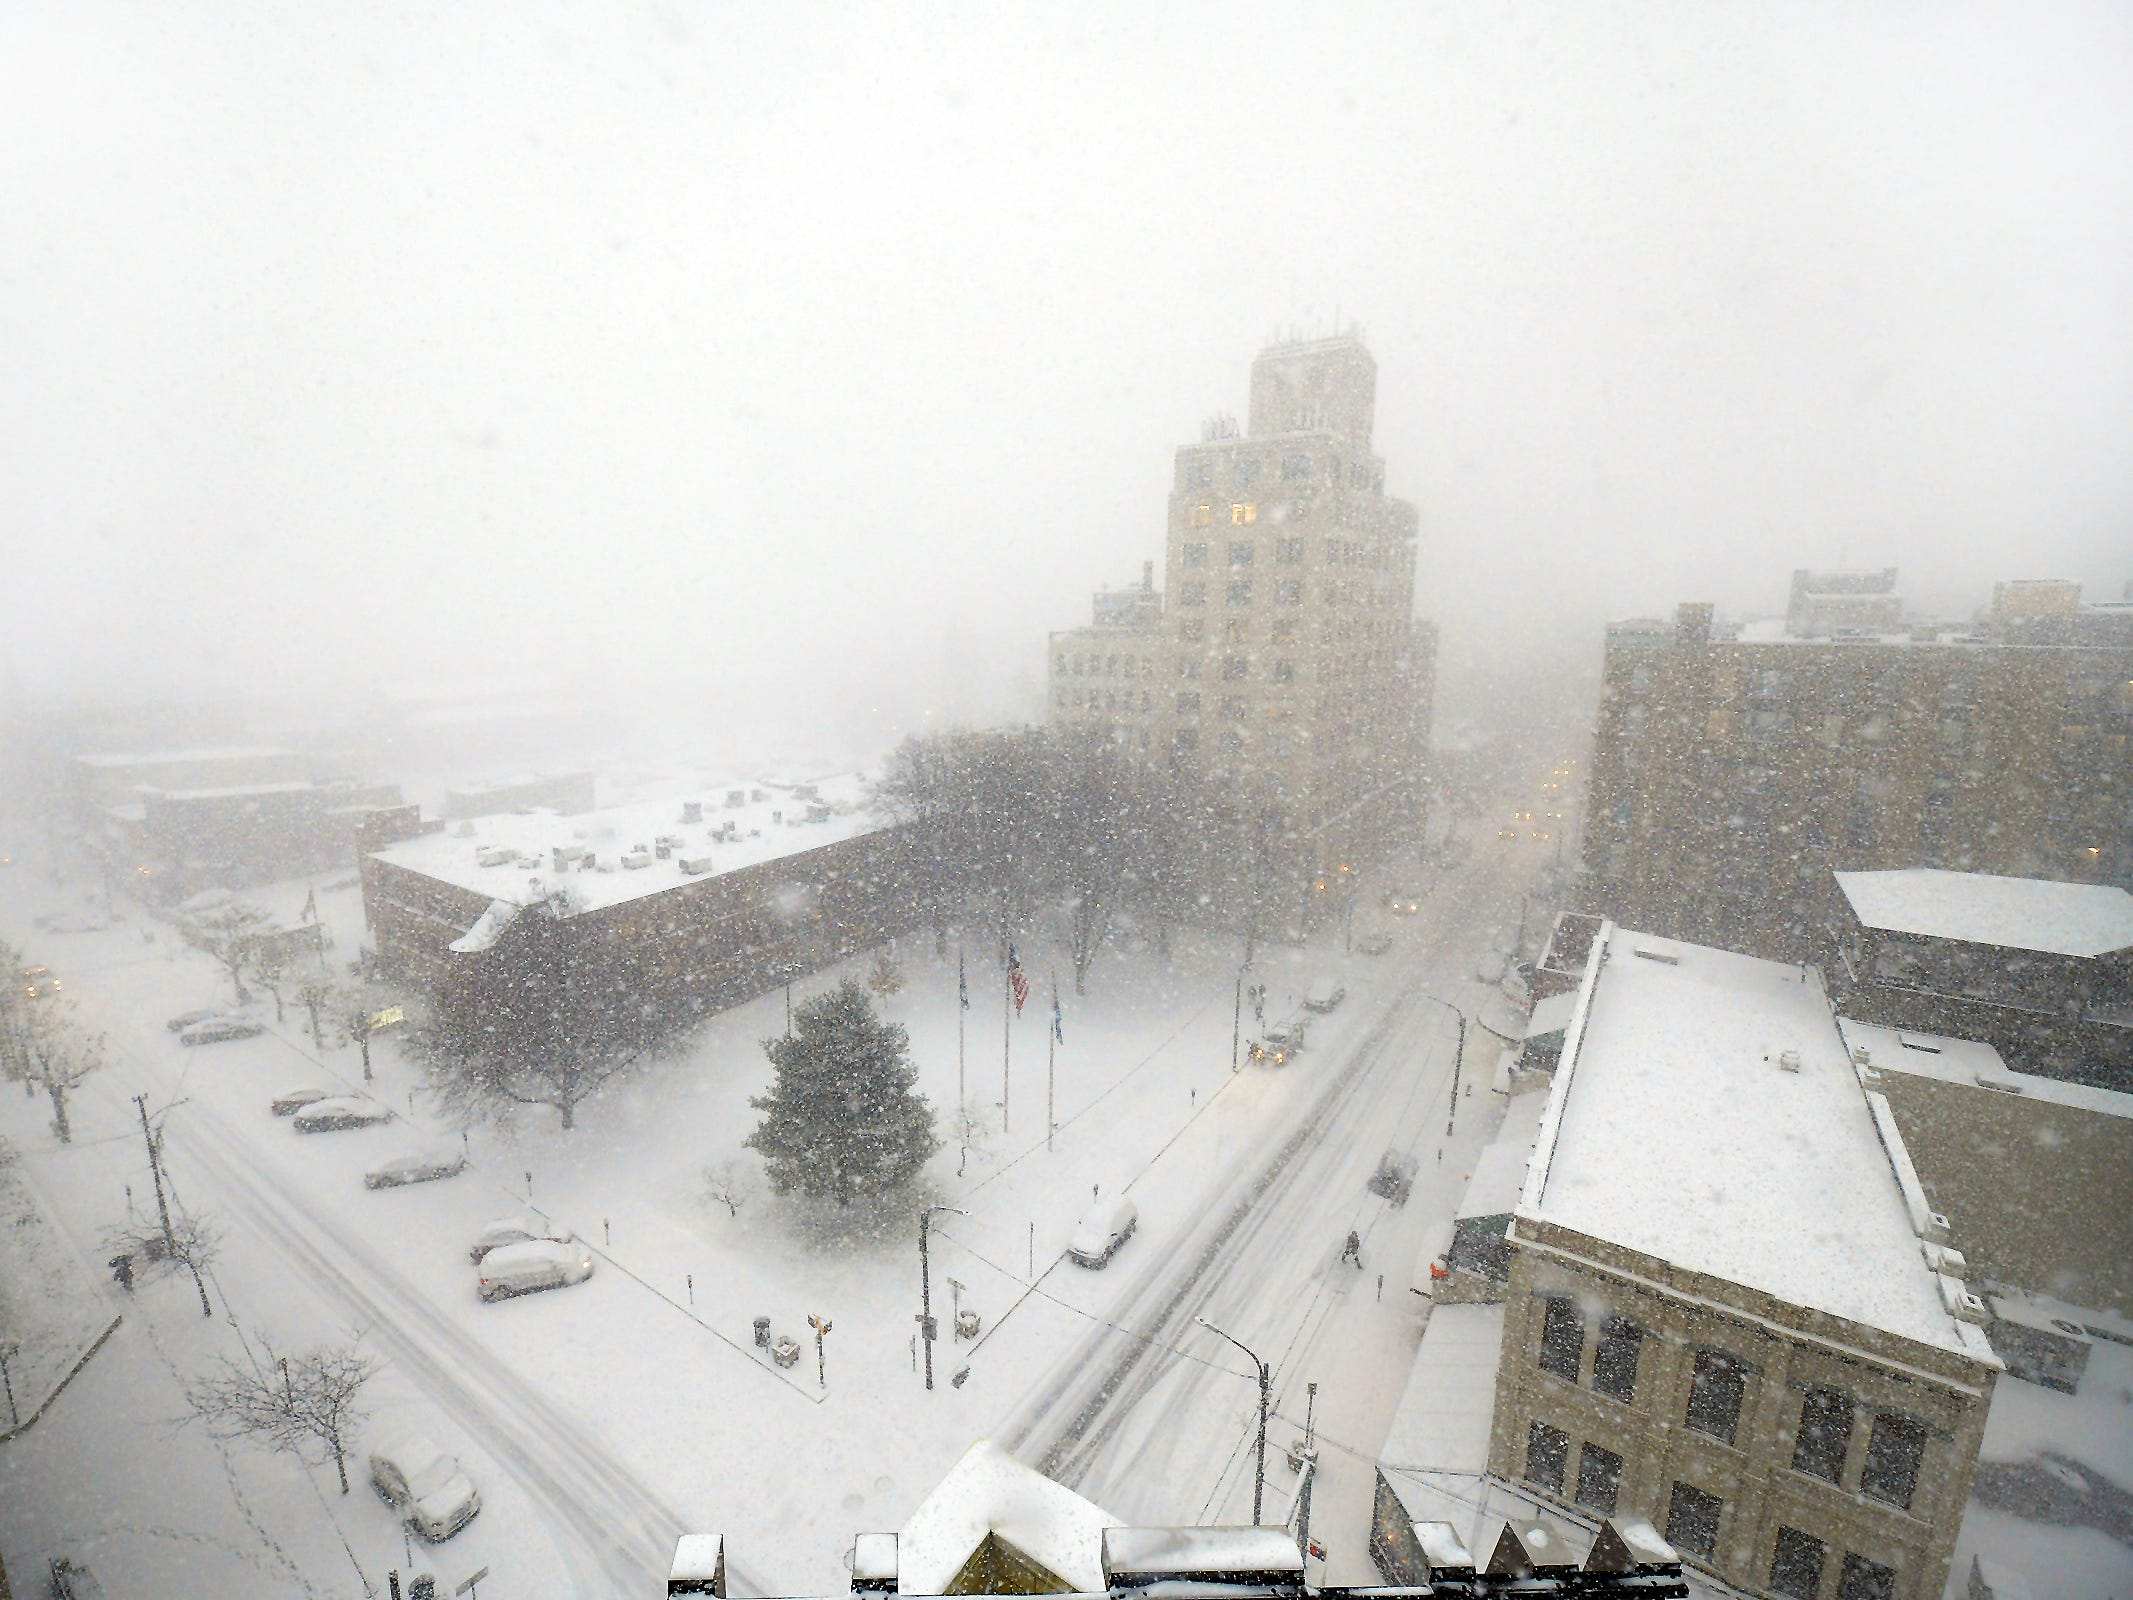 An autumn snow storm caused a white-out in downtown Scranton.